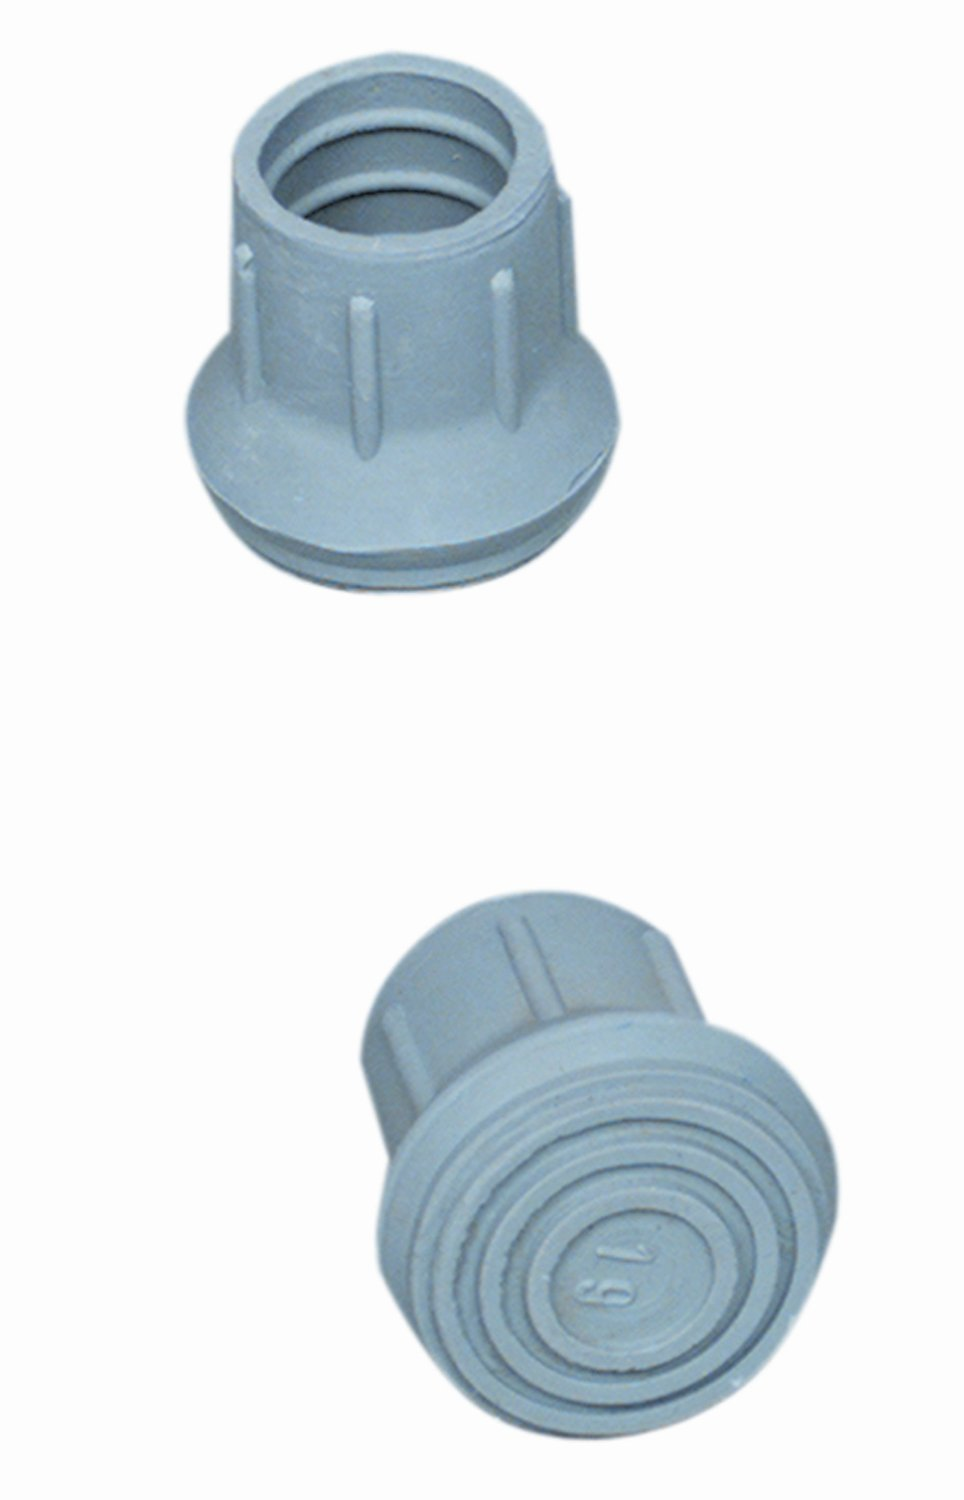 DMI Rubber Walker and Cane Replacement Tips for Stability, 7/8 Inch, Gray, 4 Count